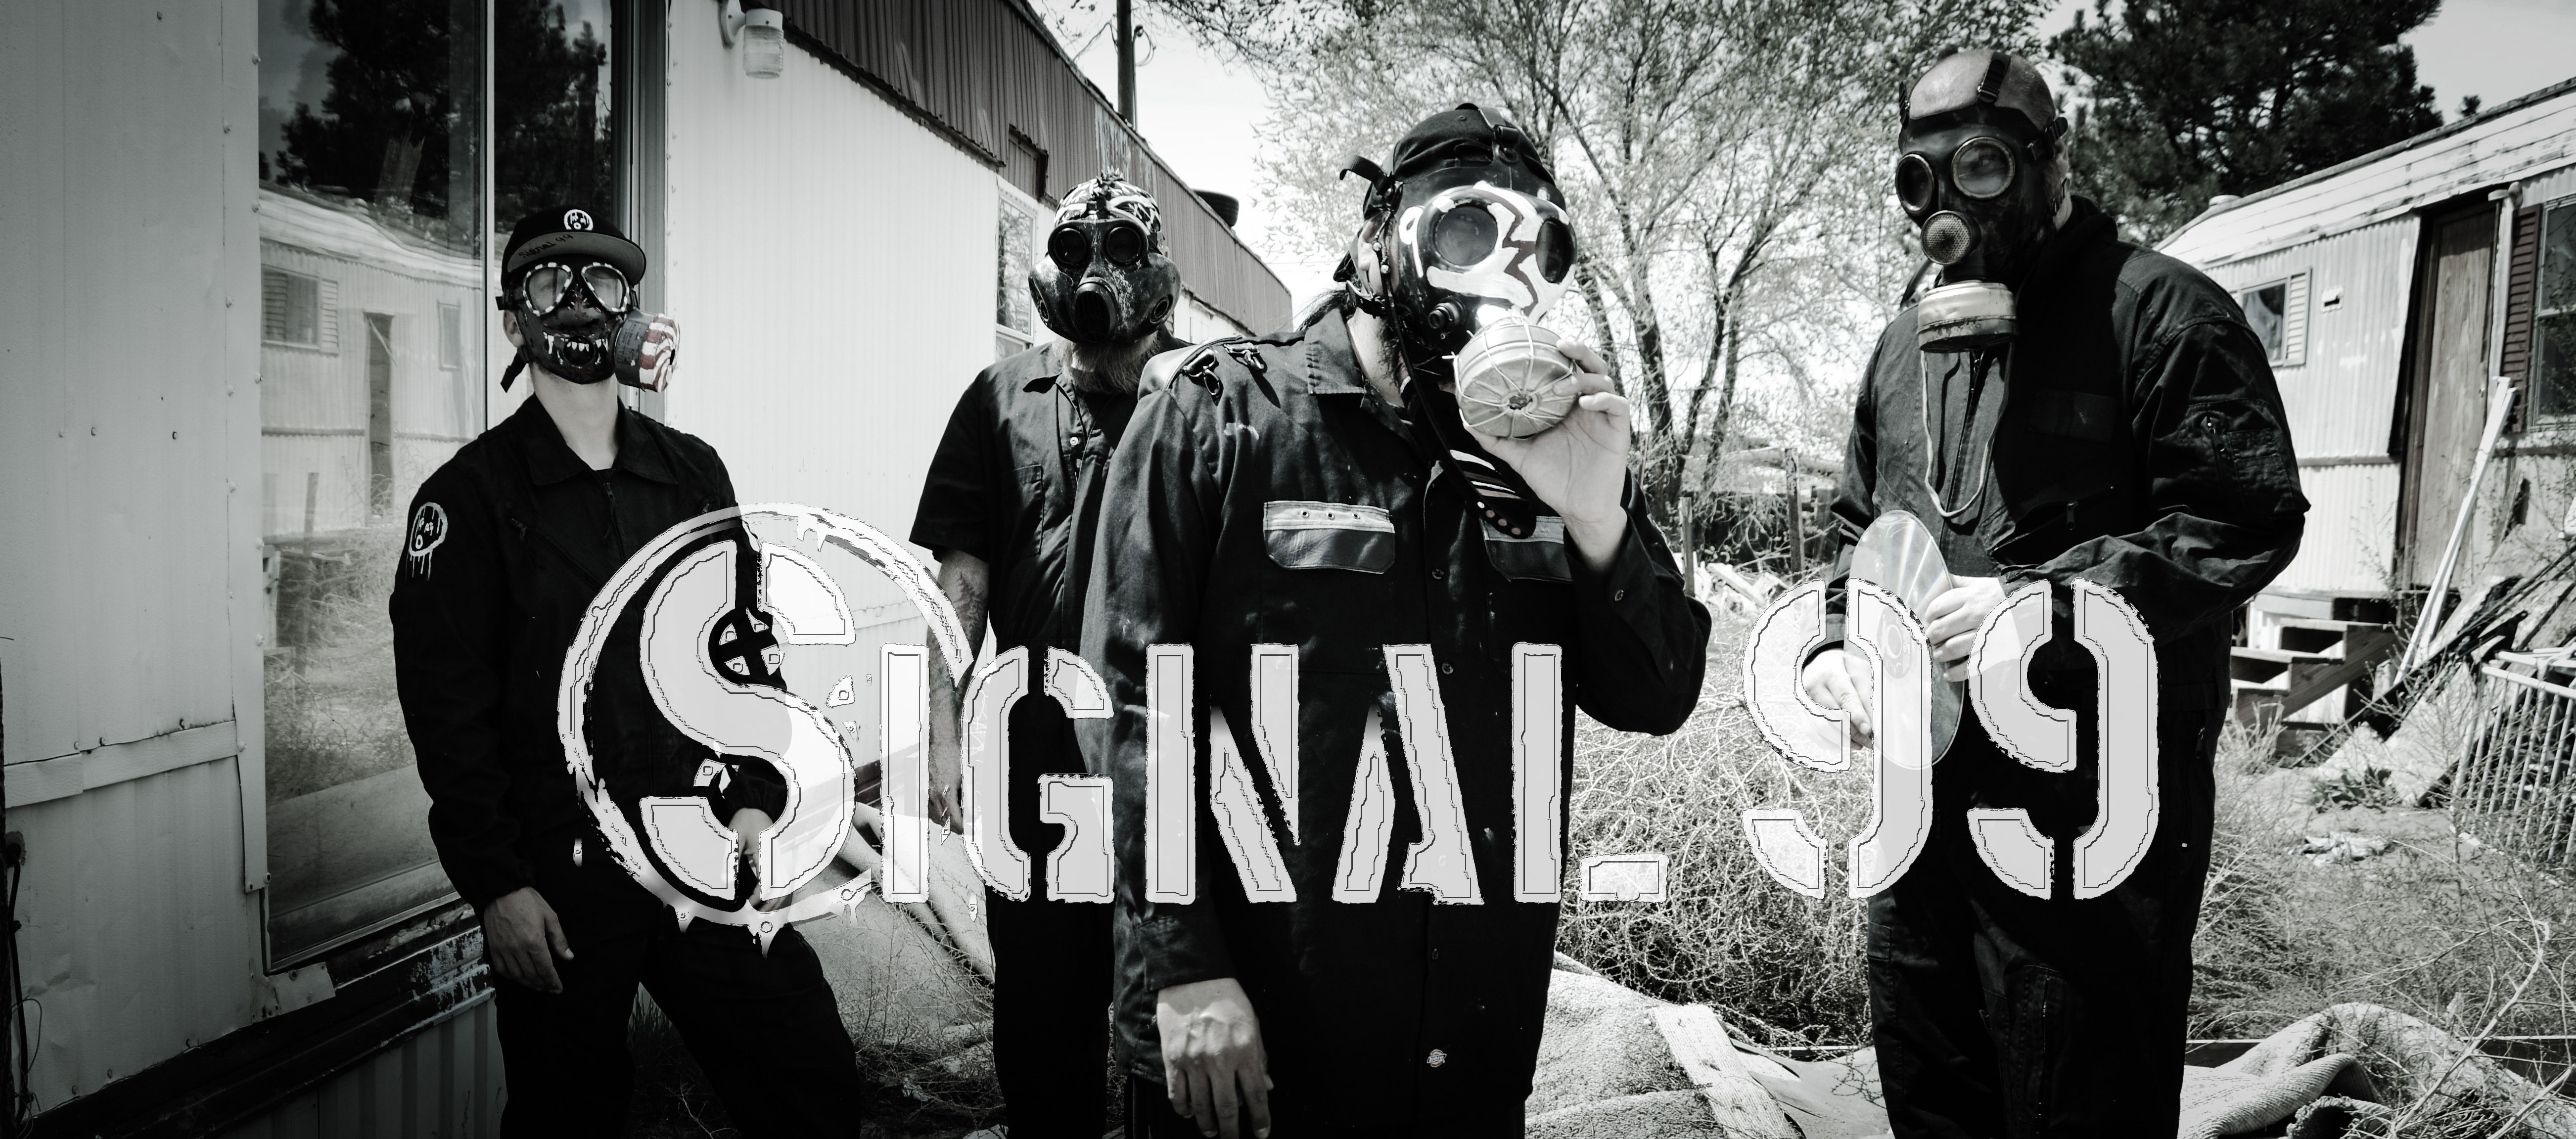 New Song From Metal Band Signal 99